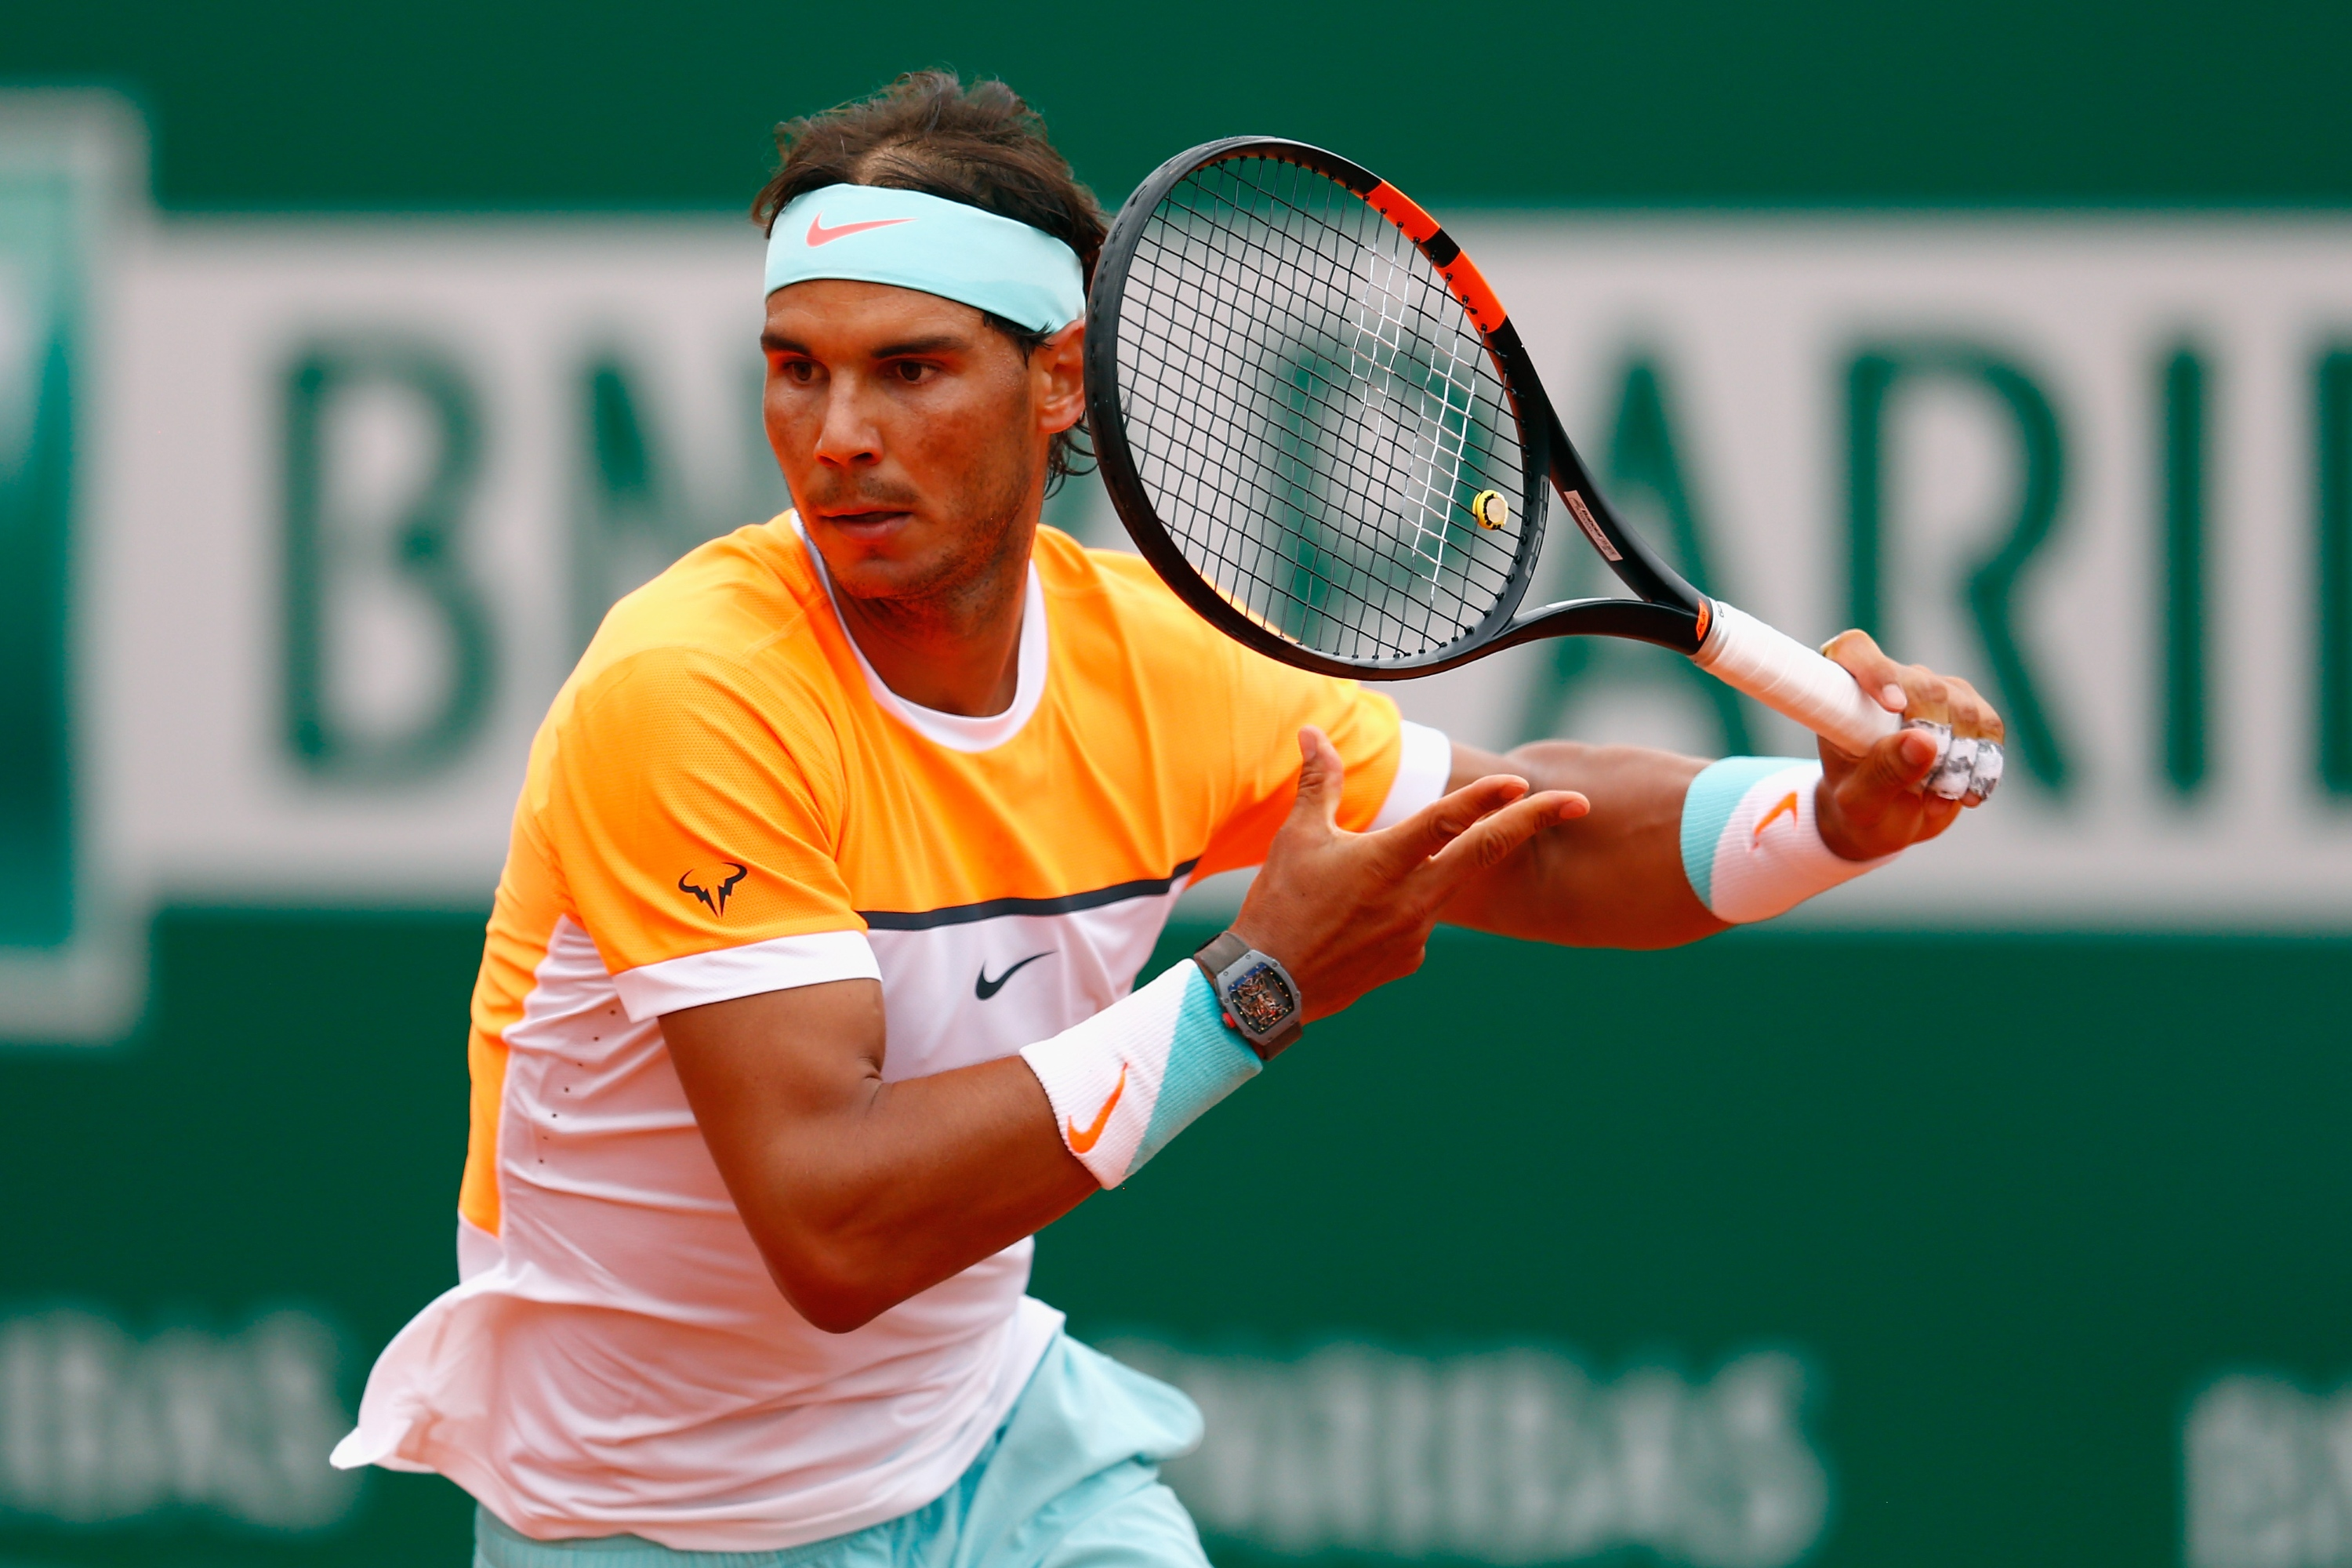 Rafael Nadal hails 'unbelievable' climb back to No 1